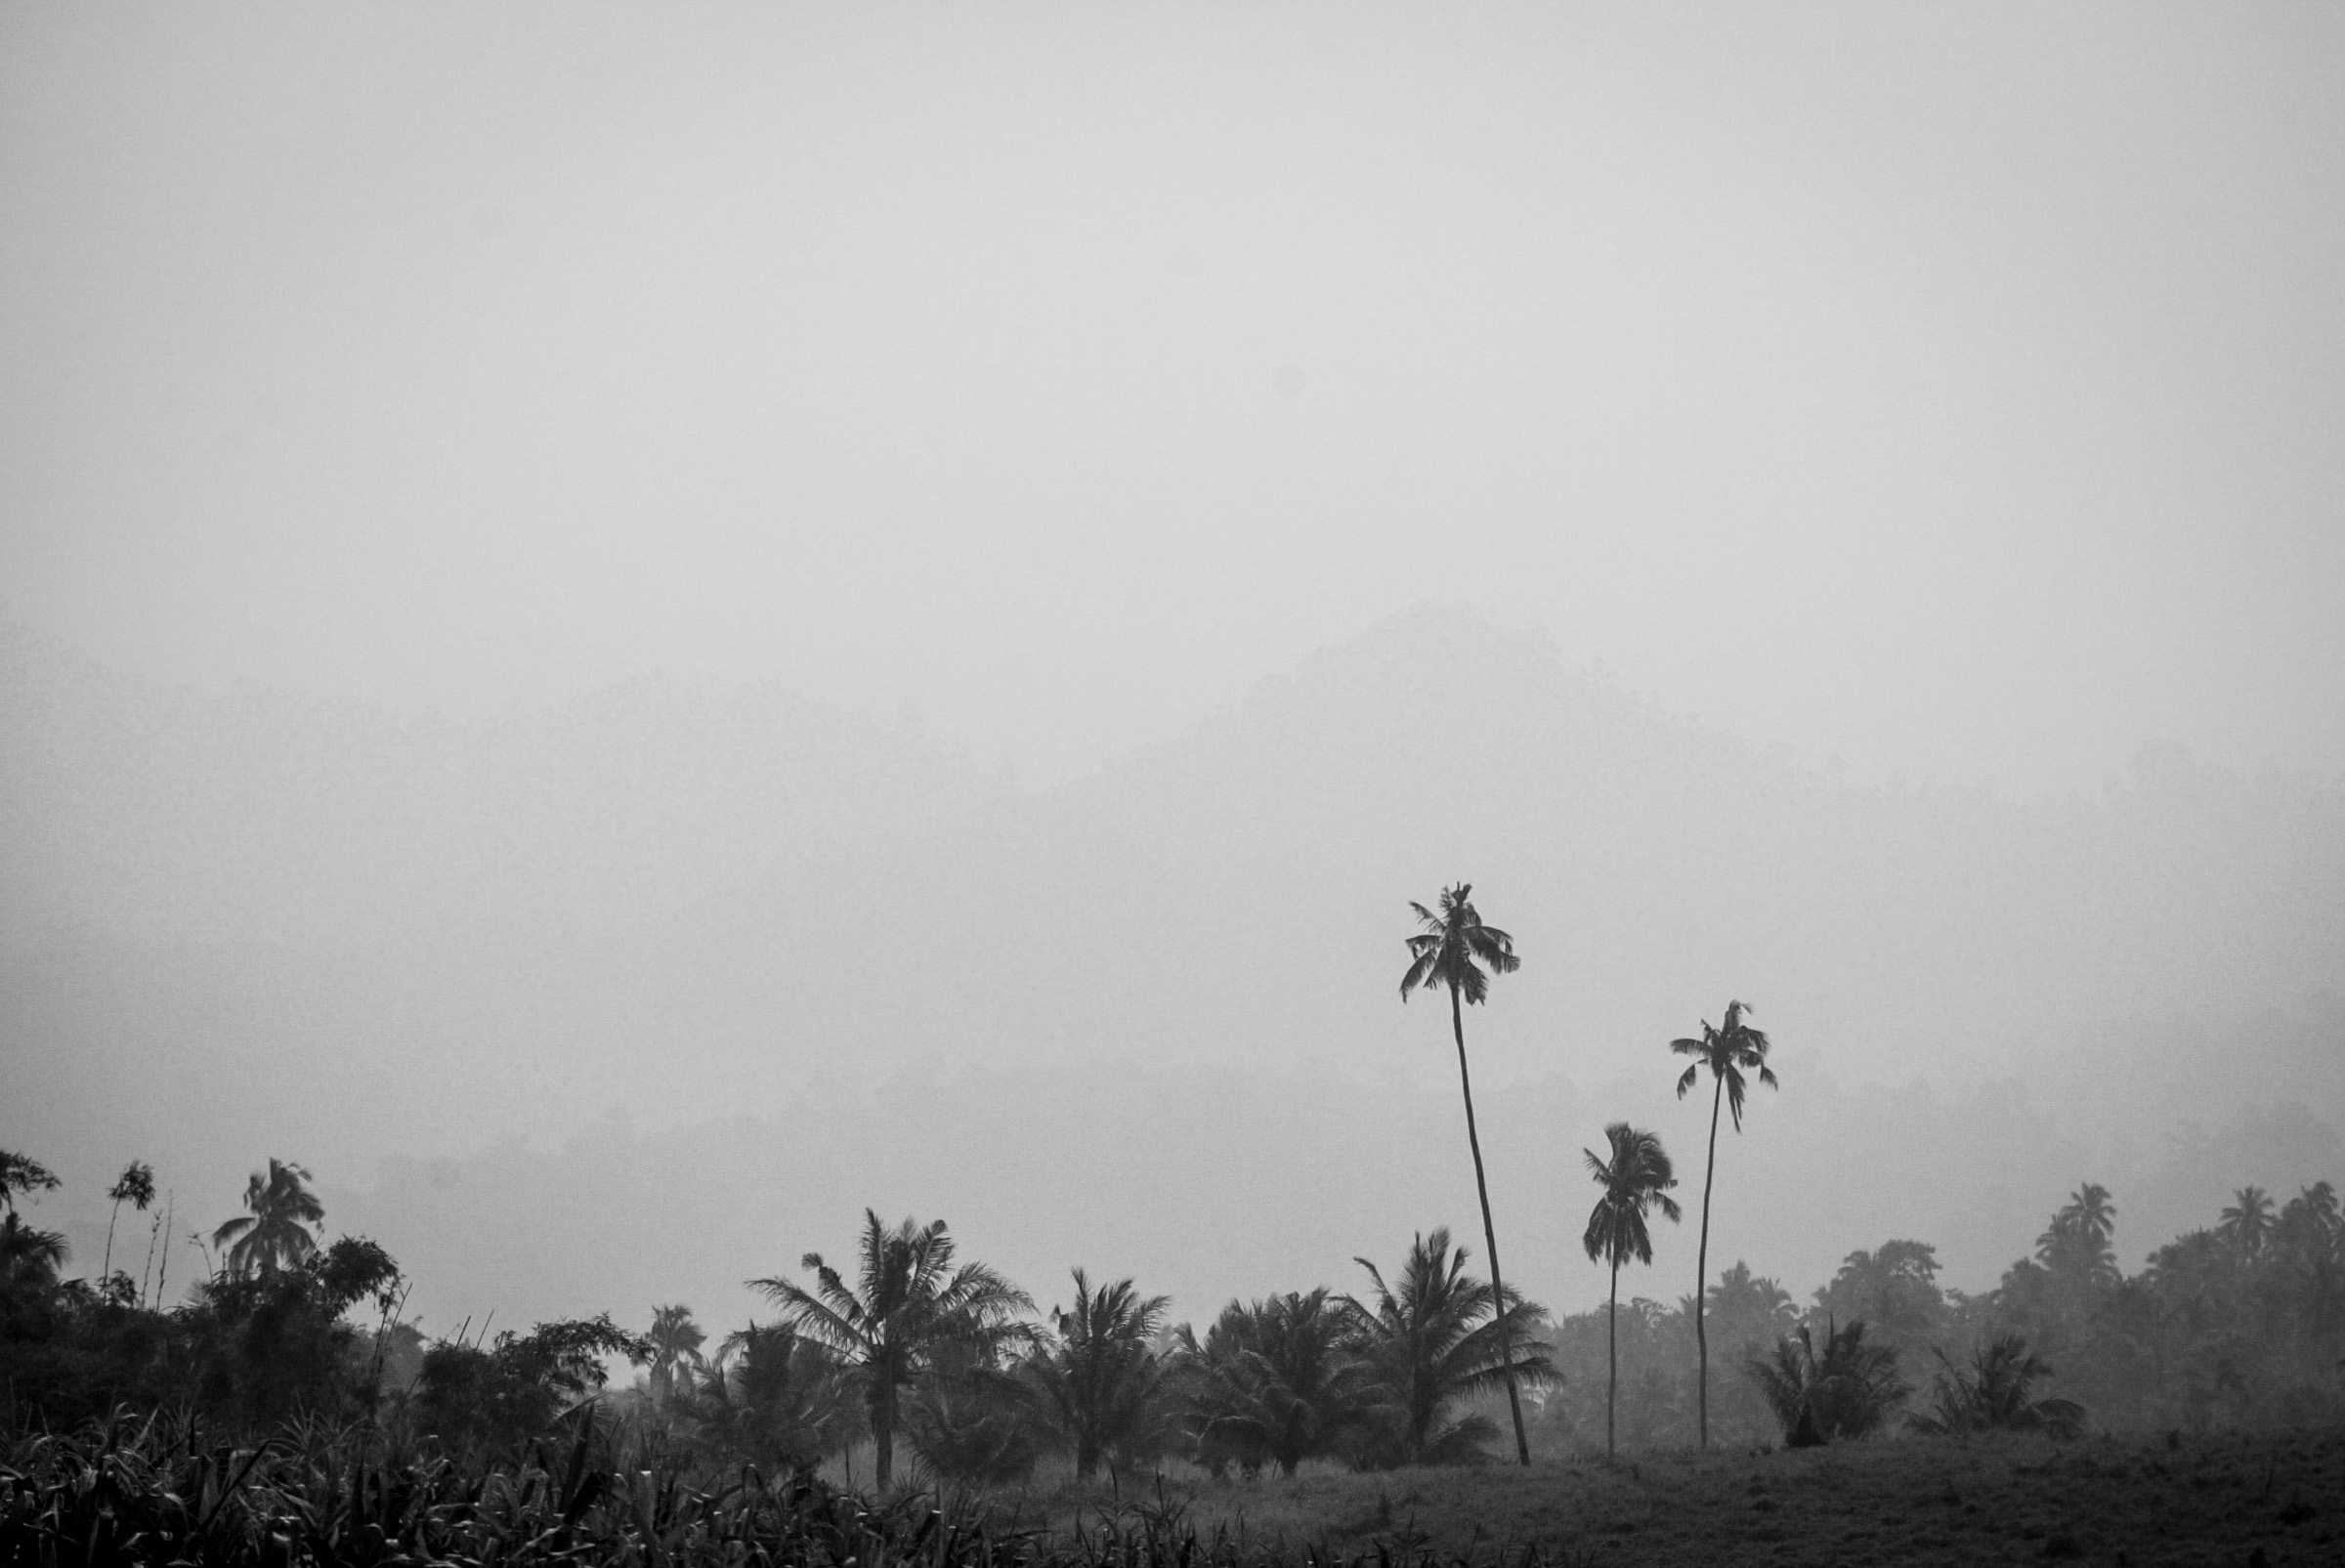 Haze over the mountain ranges in what used to be the MILF's Camp Abubkar in Matanog, Maguindanao on October 23.